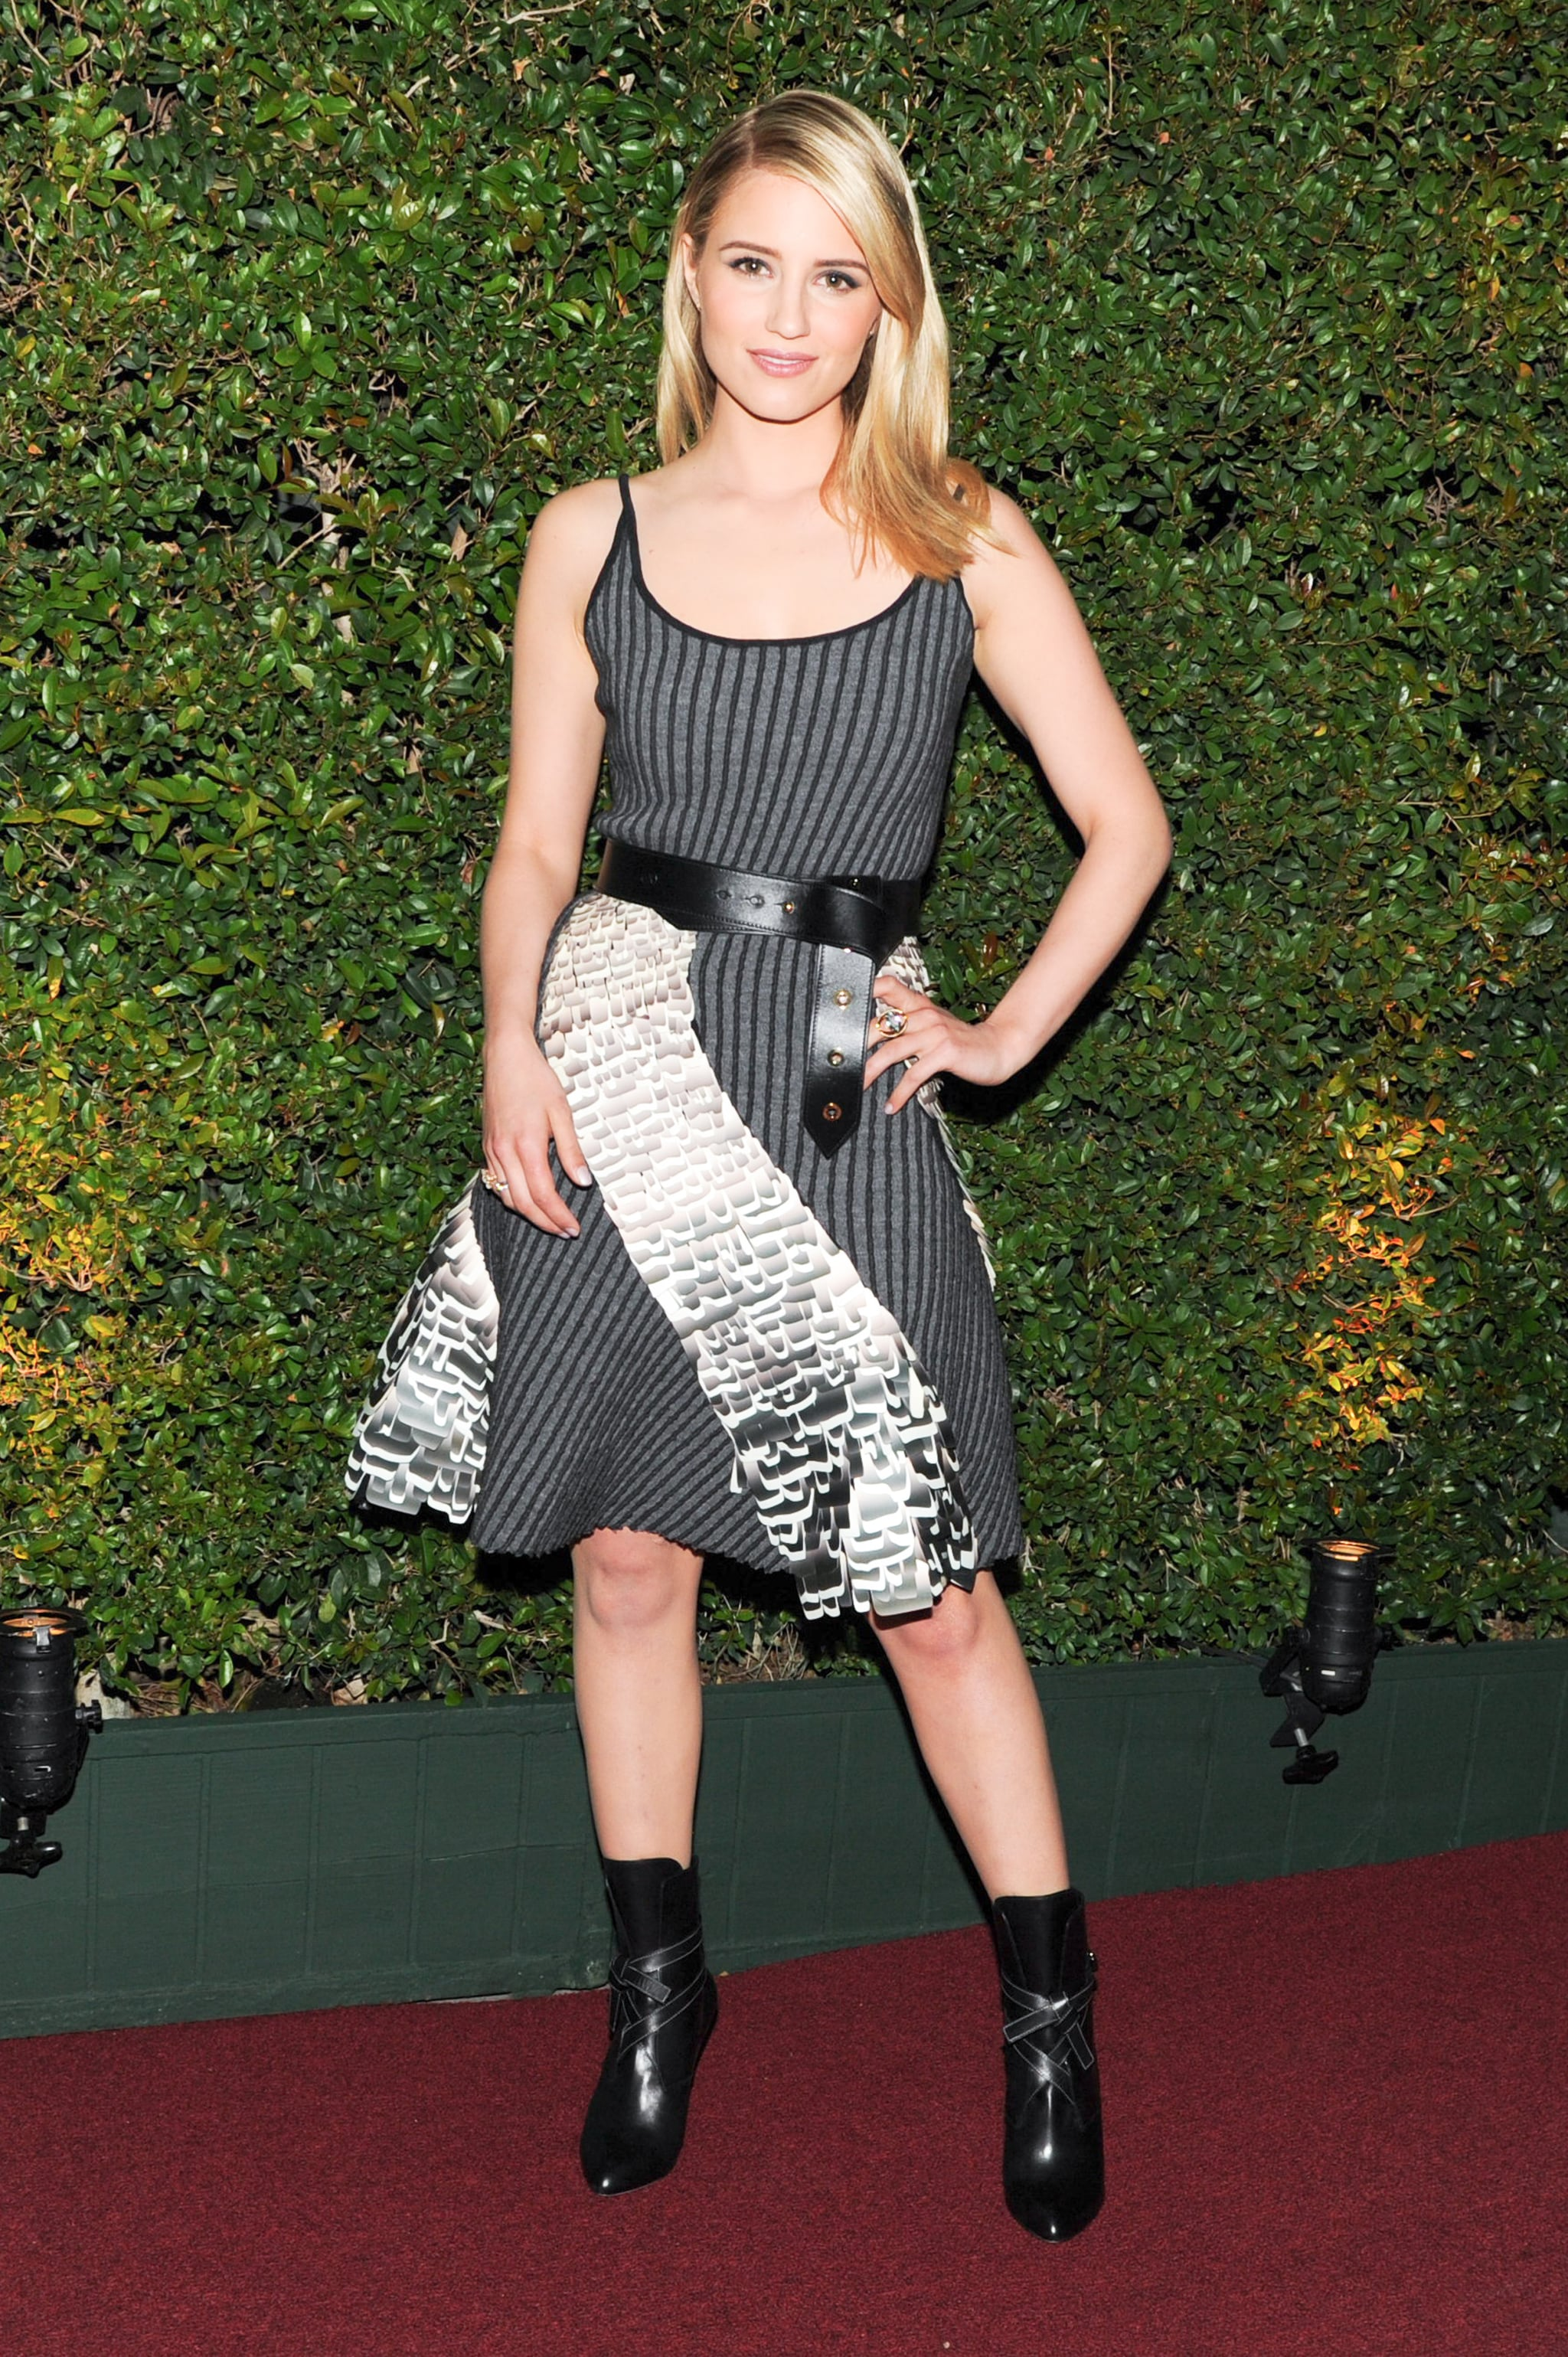 Dianna Agron at MOCA's 35th Anniversary Gala